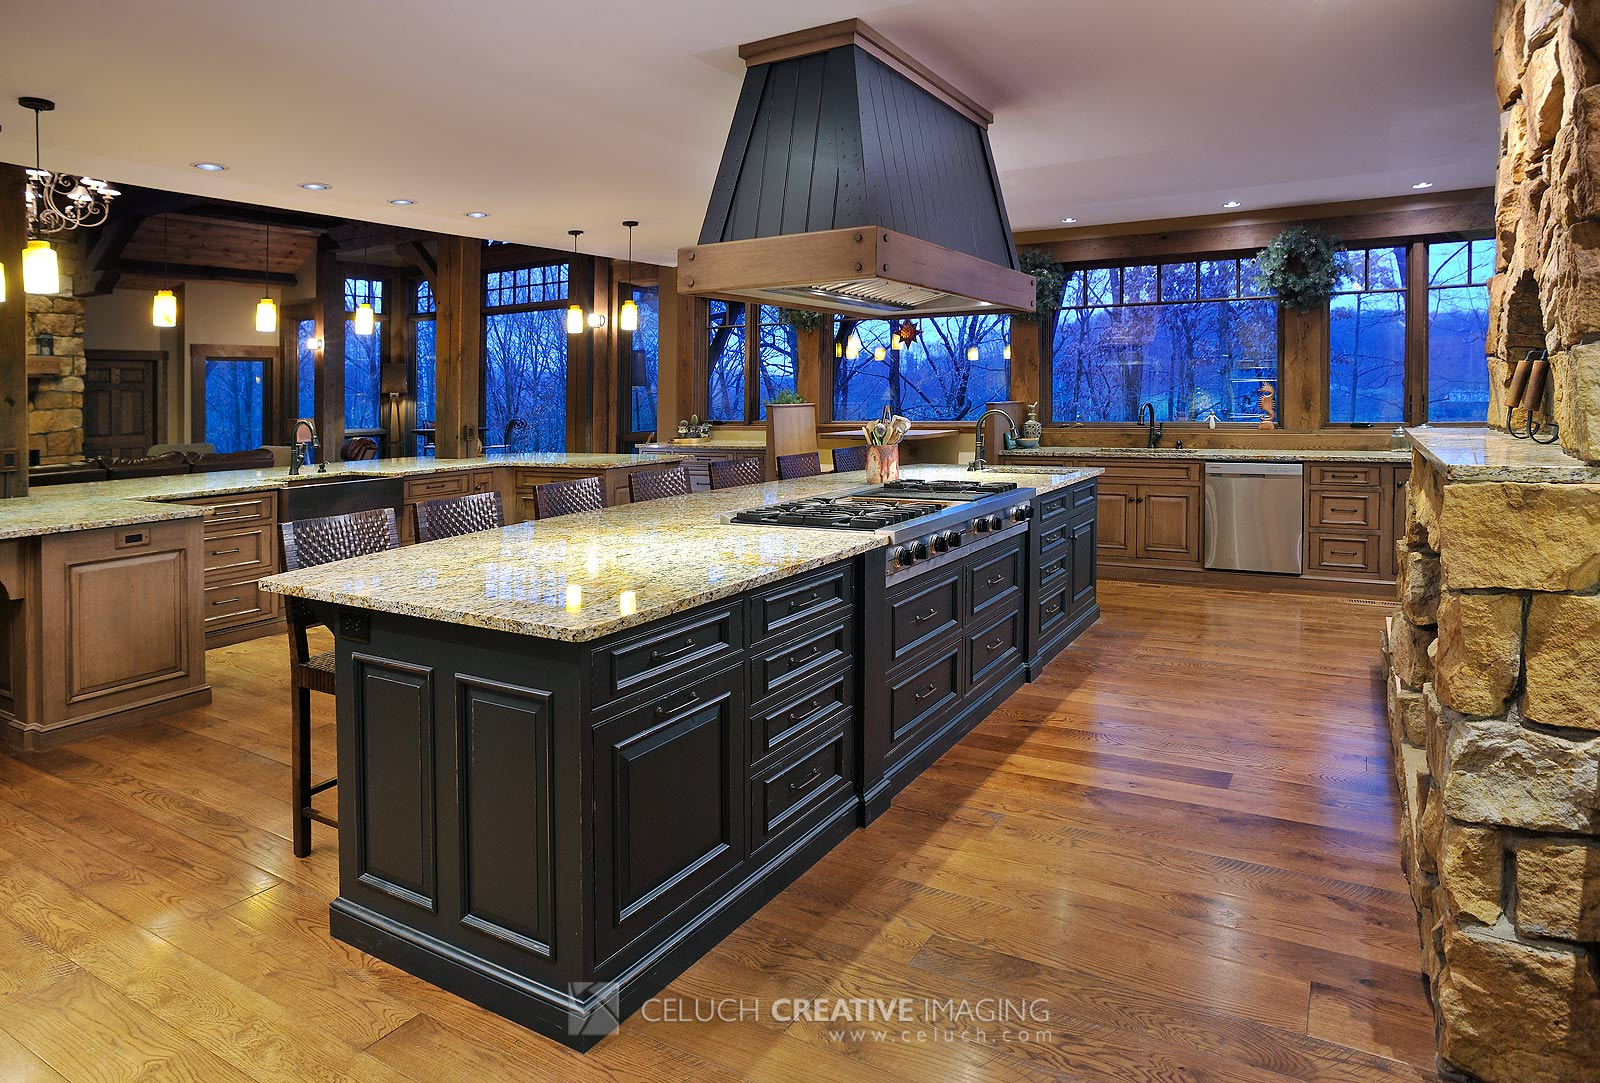 Custom Cabinetry By Mullet Cabinet Flooring By Mount Hope Planing